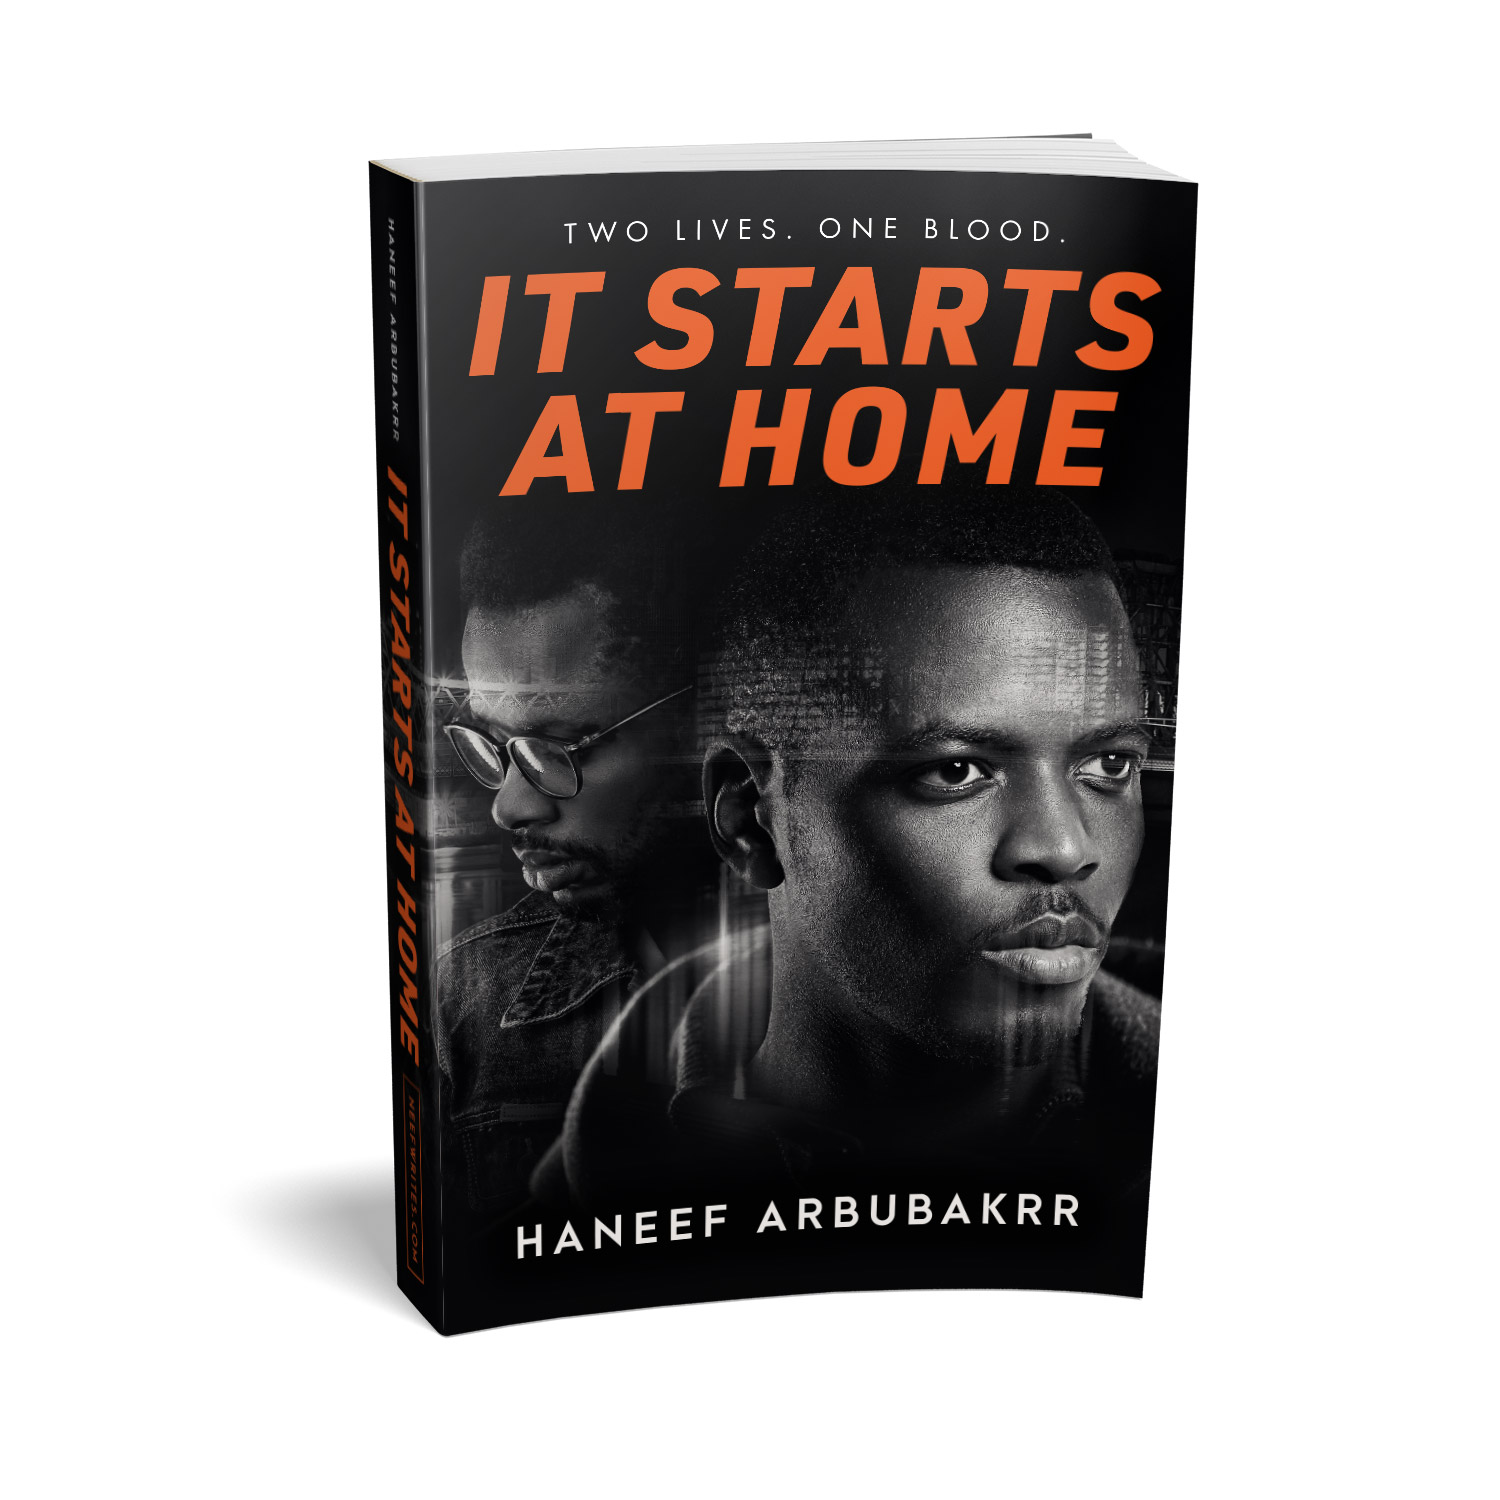 'It Starts At Home' is a gritty urban crime drama. The author is Haneef Arbubakrr. The book cover design and interior formatting are by Mark Thomas. To learn more about what Mark could do for your book, please visit coverness.com.